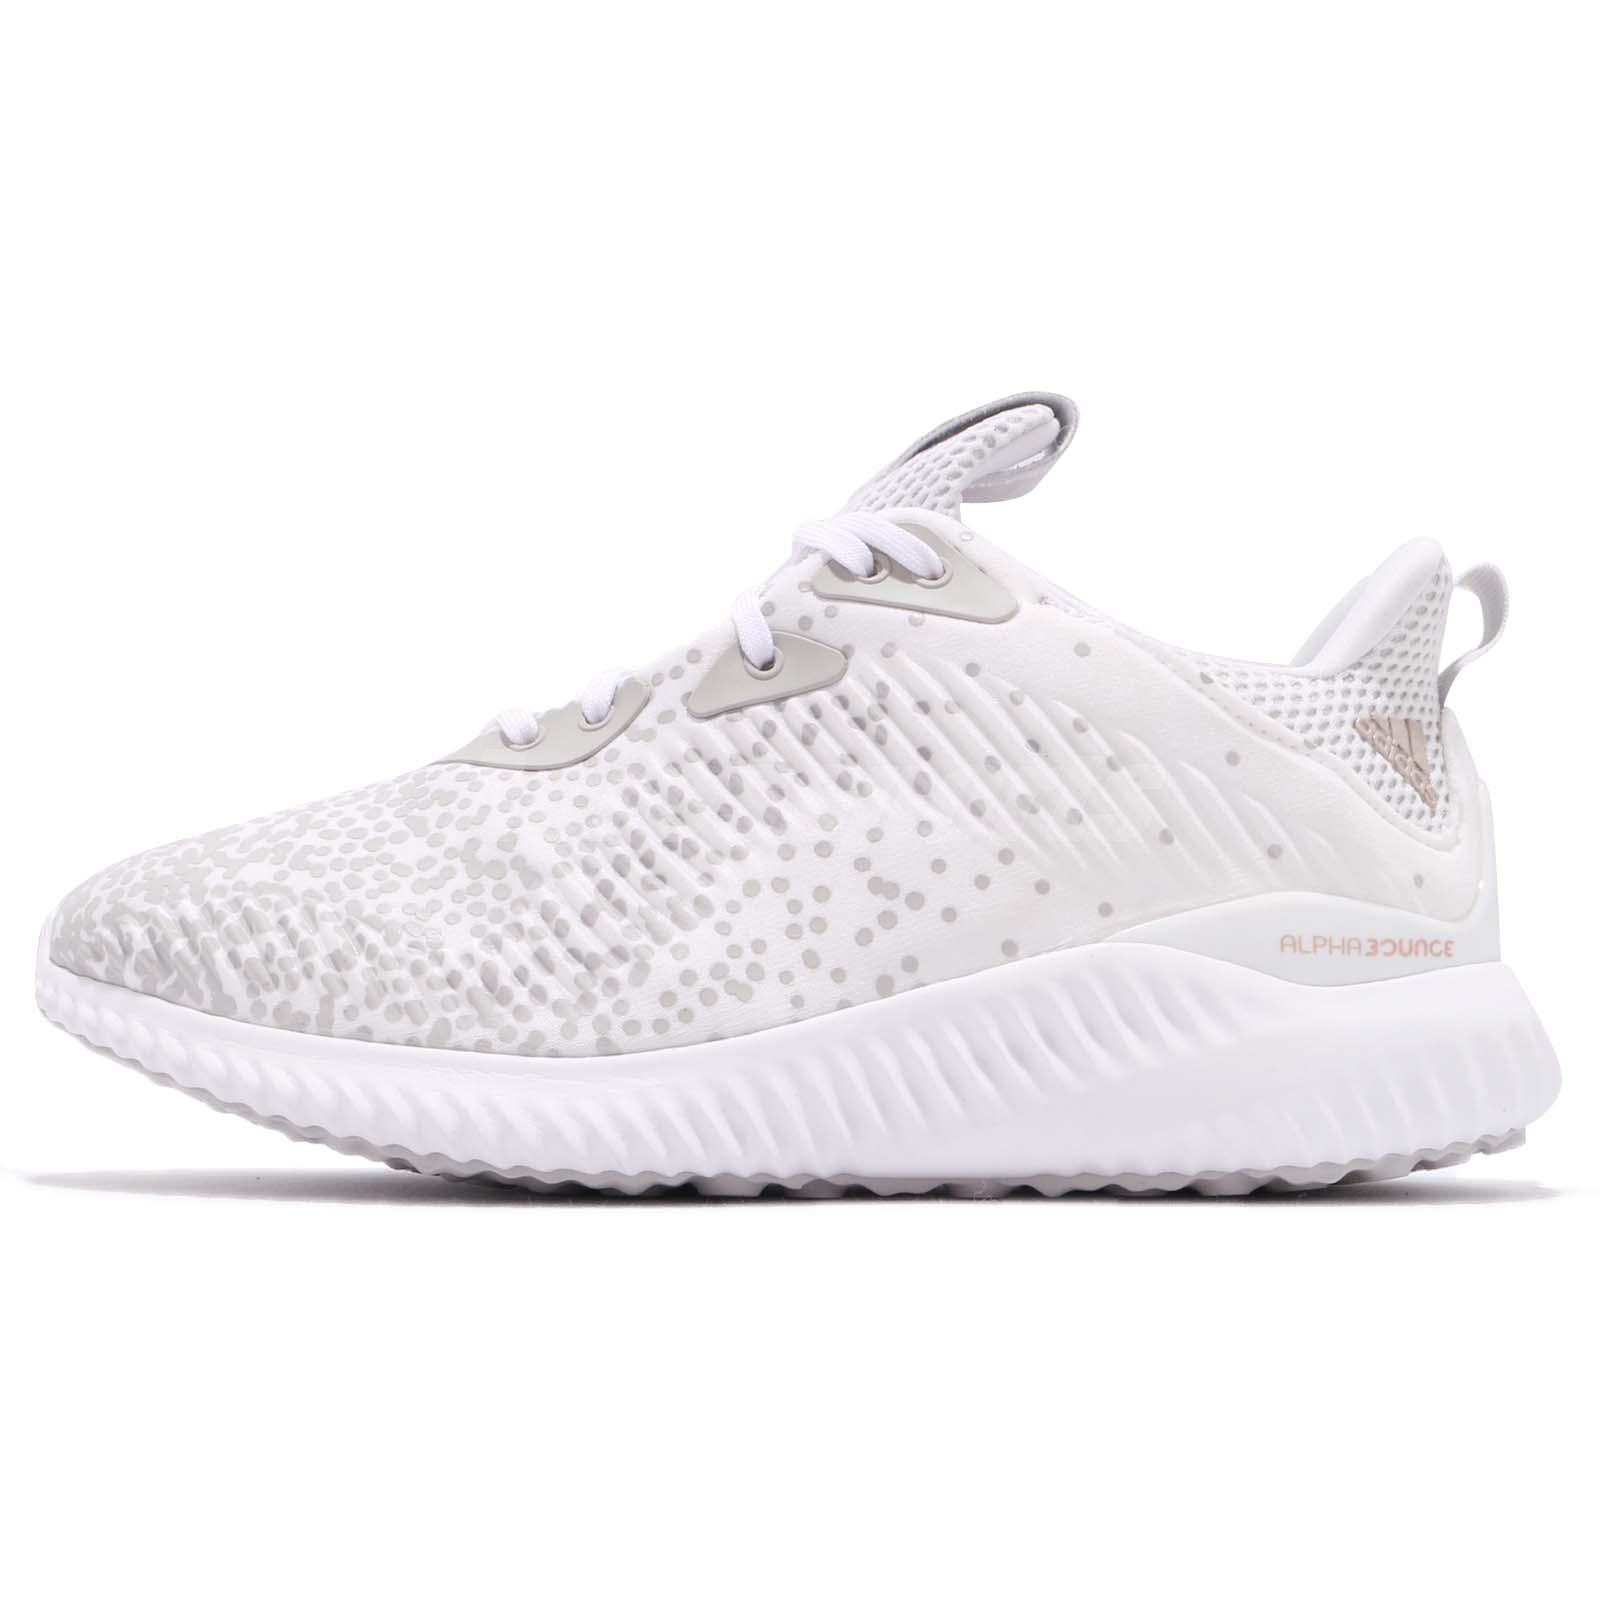 the latest 0c59a f9e8e adidas Alphabounce 1 W White Grey Black Women Running Shoes Sneakers DA9971